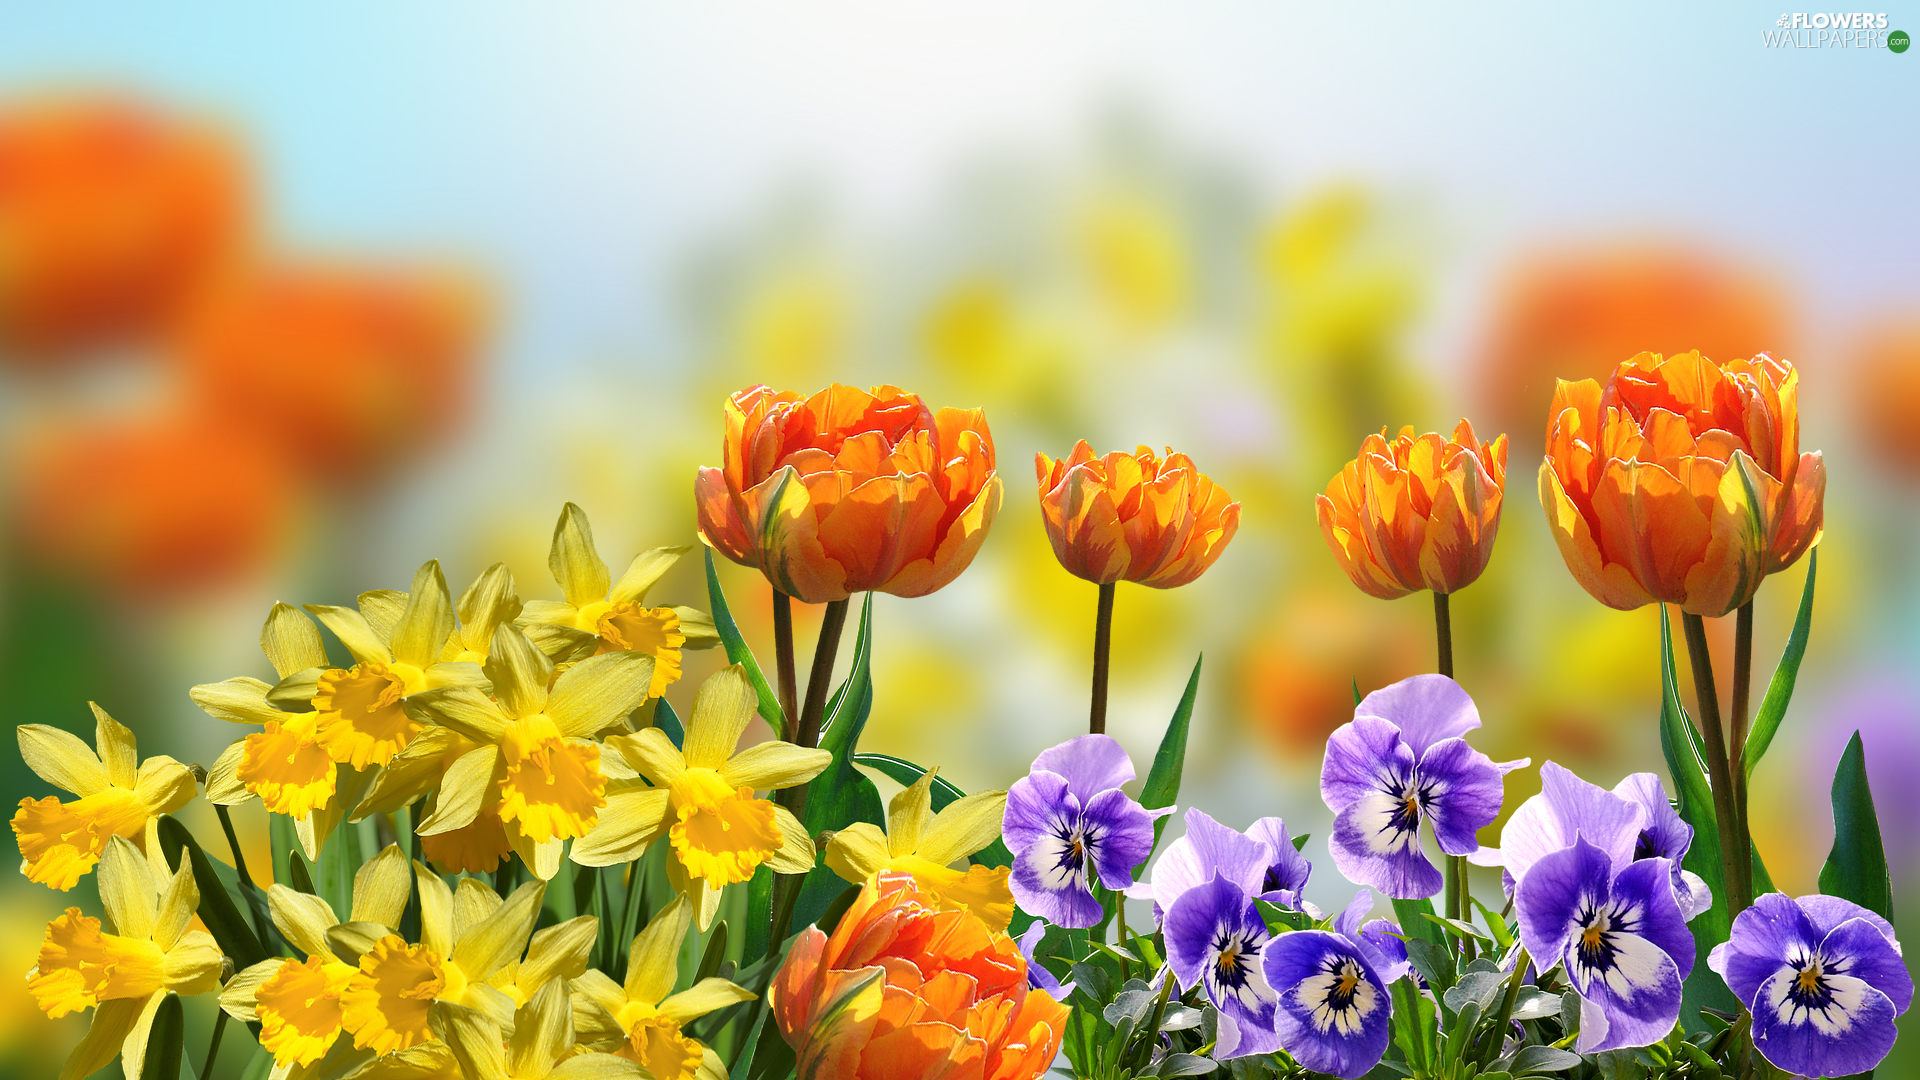 Flowers, pansies, Daffodils, Tulips